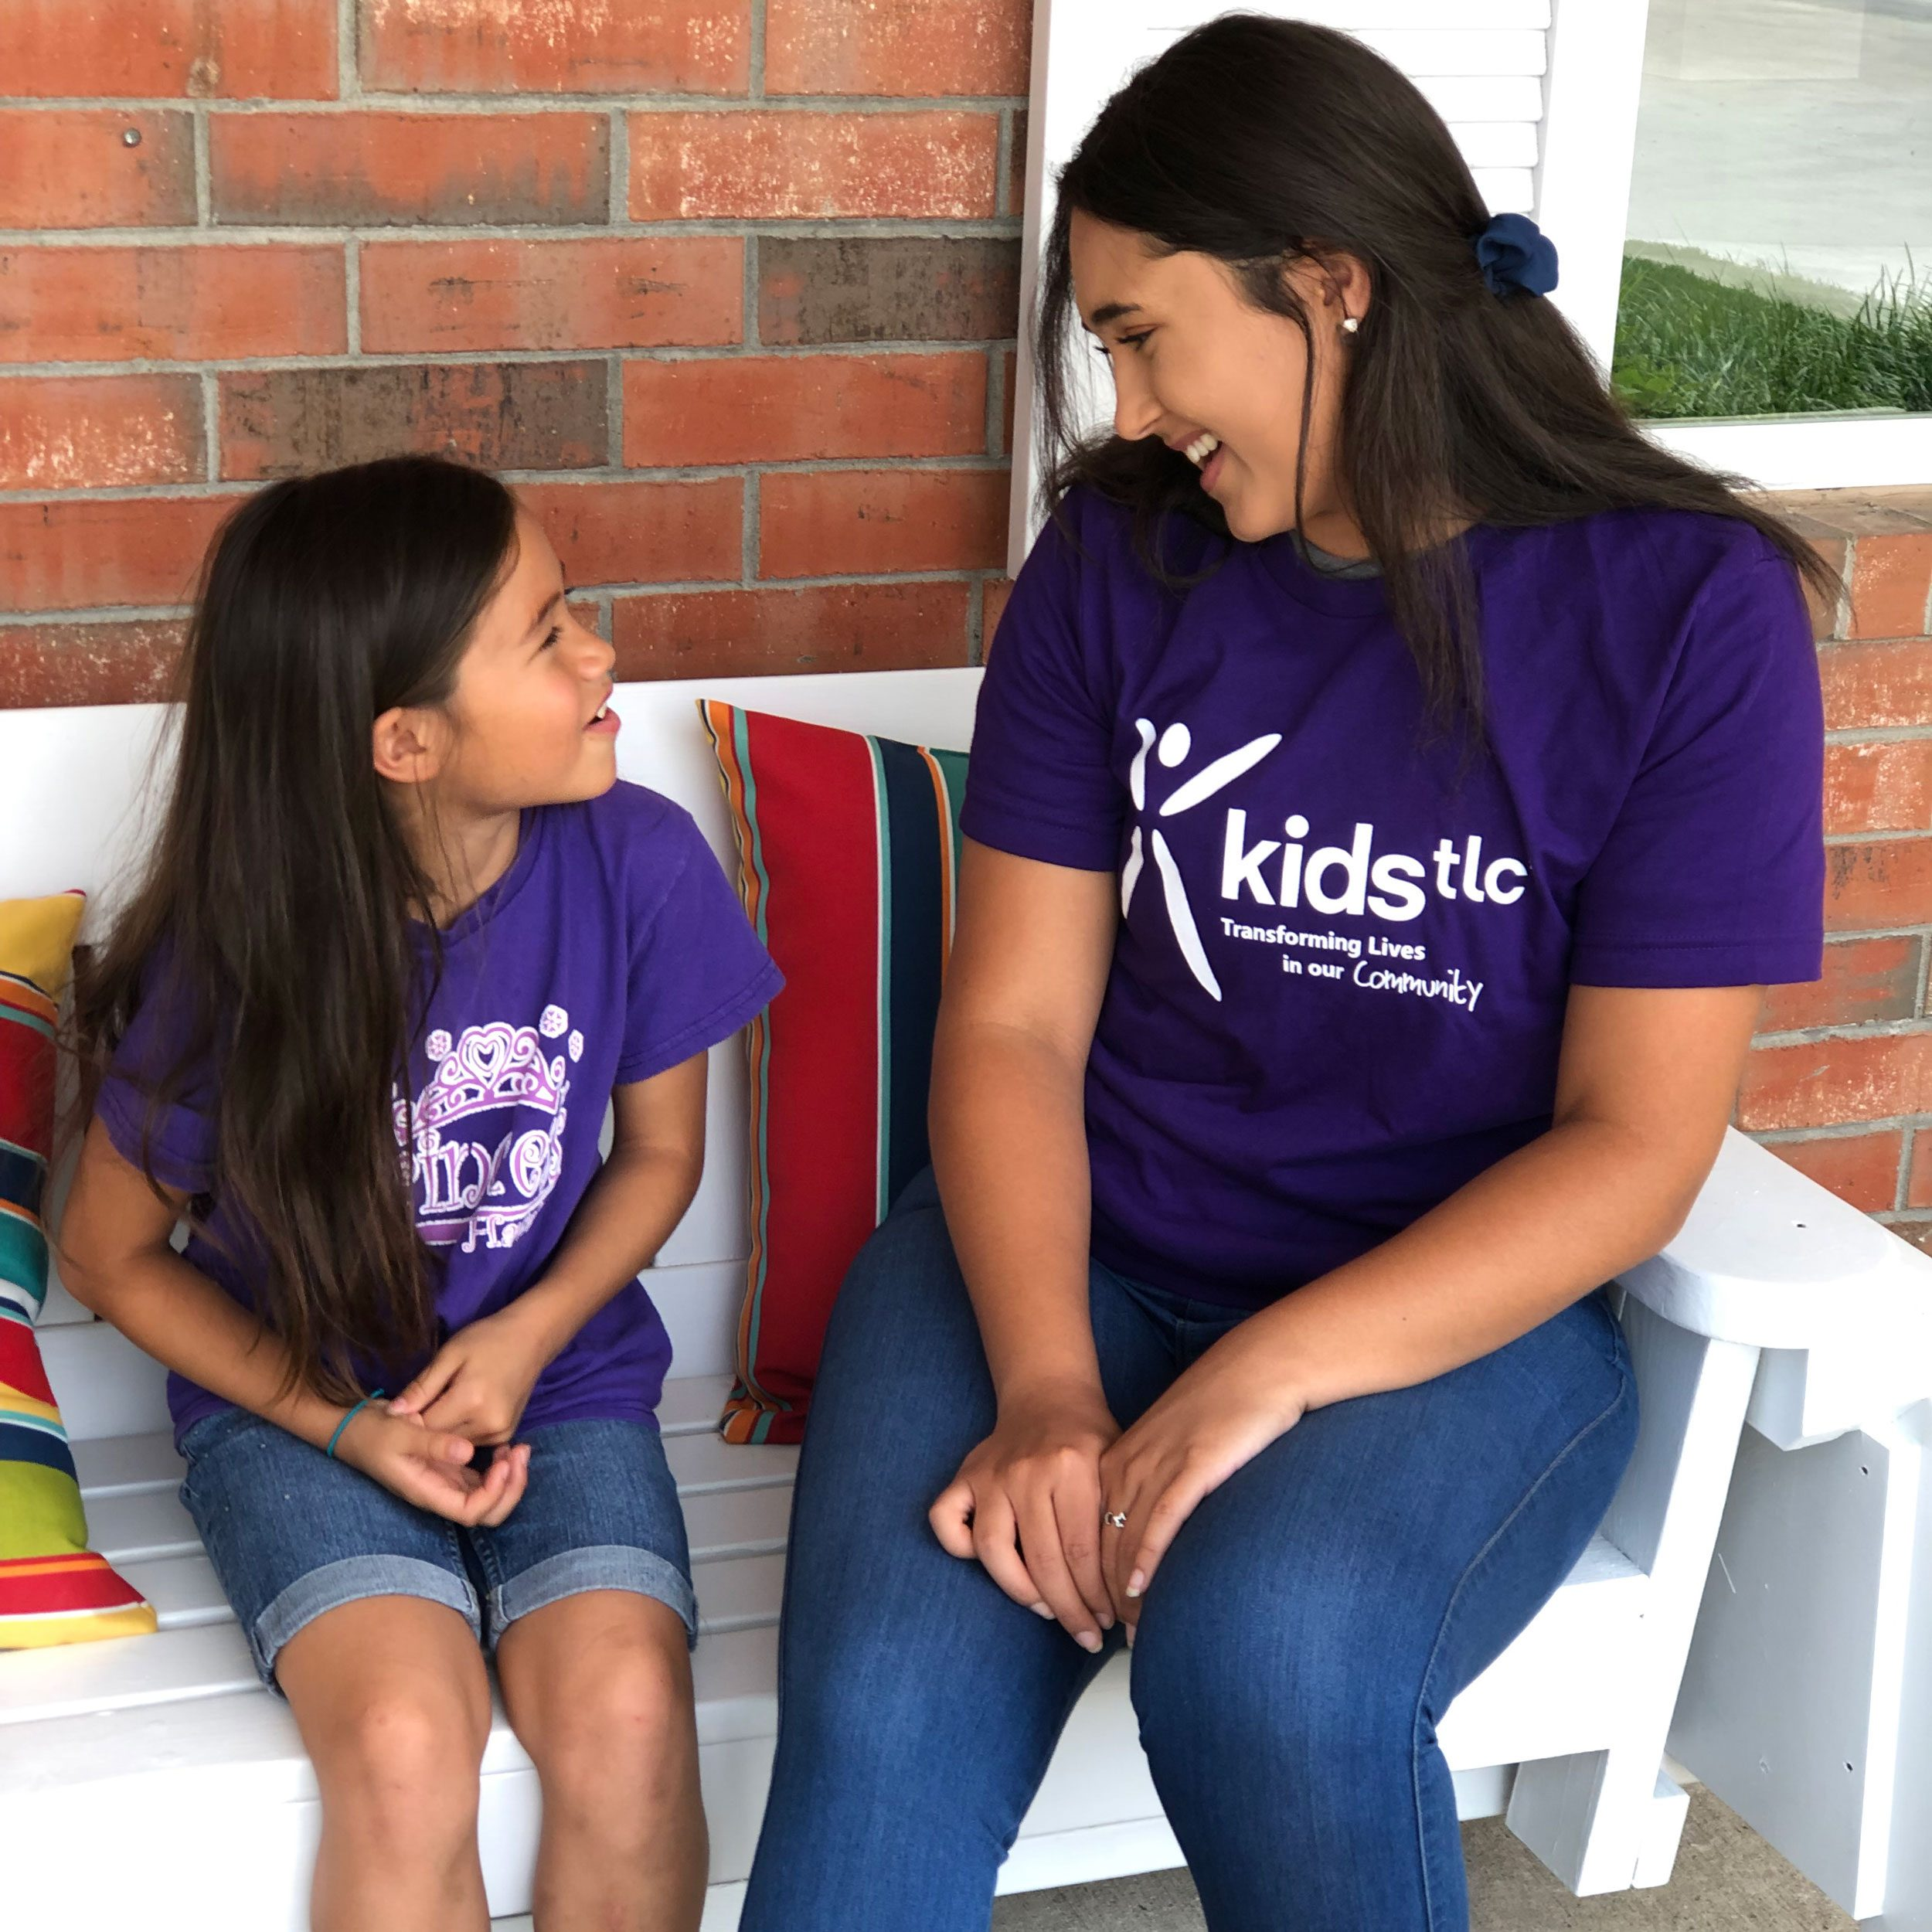 woman in KidsTLC shirt with a girl on a bench